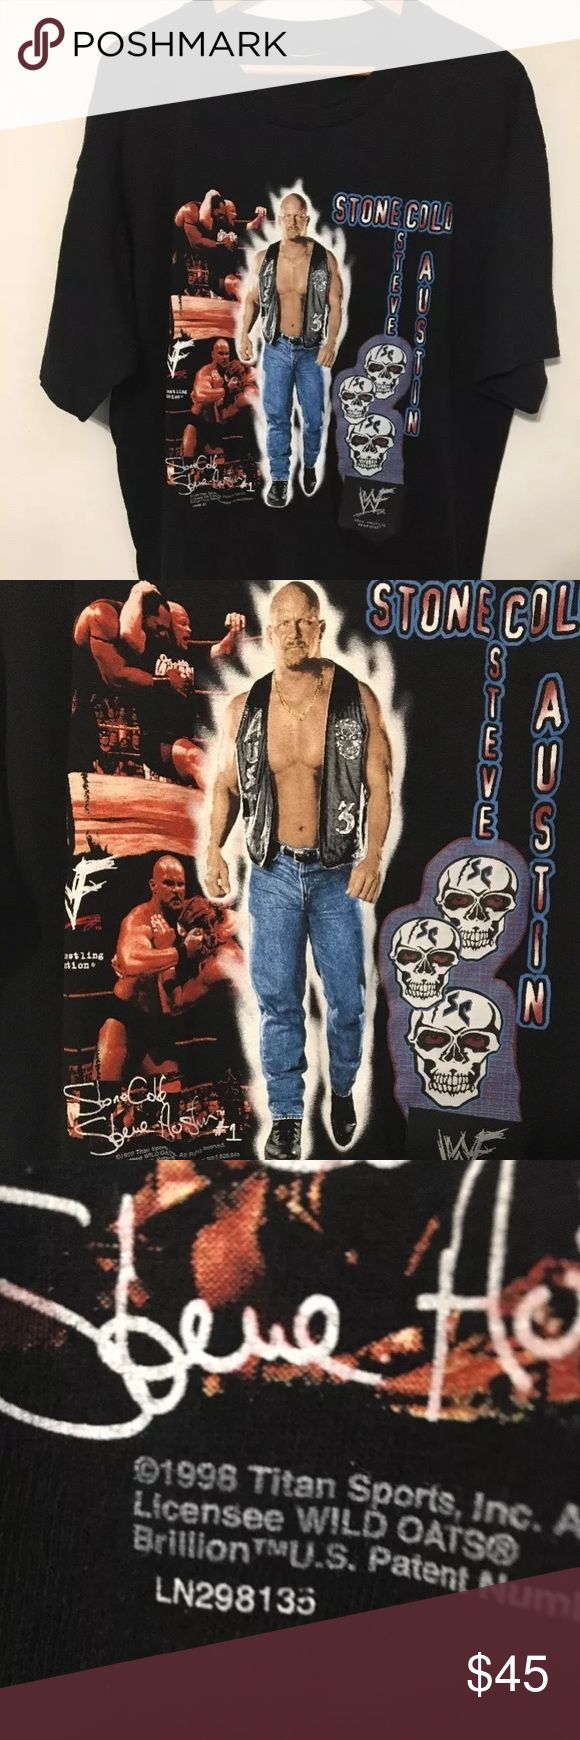 VTG Stone Cold Steve Austin Talking Shirt WWF Wwe VTG Stone Cold Steve Austin Talking Shirt 90s WWF Wwe Rare 2XL Rare! The talking part detaches and it can just be a normal shirt.  The talking feature hasn't been used in years it may need a new battery. Buy knowing that it might not work. But it also might work after a new battery. I have no way of confirming it works. Buy knowing that! !!  Shirt is worn. And not new condition.   Message me any questions. Vintage Shirts Tees - Short Sleeve